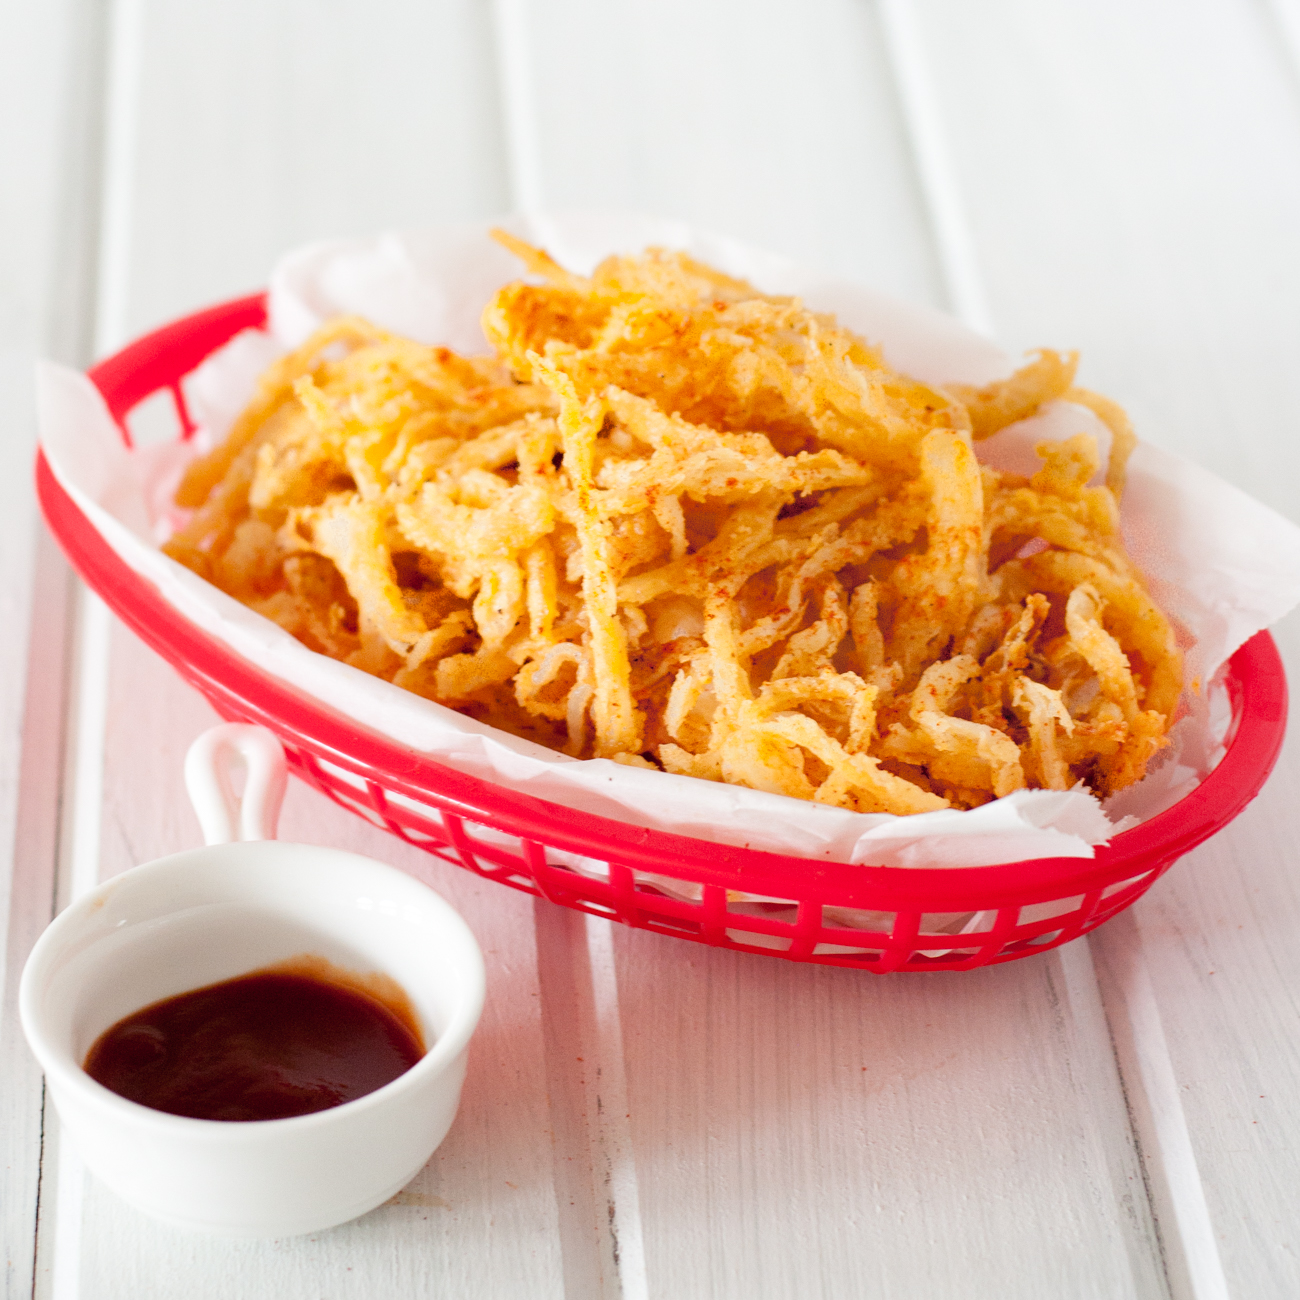 Crispy smoked paprika onion straws are an easy and delicious addition to burgers, salads, steaks, sandwiches, or a fun snack to enjoy just because. Recipe found on GoodieGodmother.com